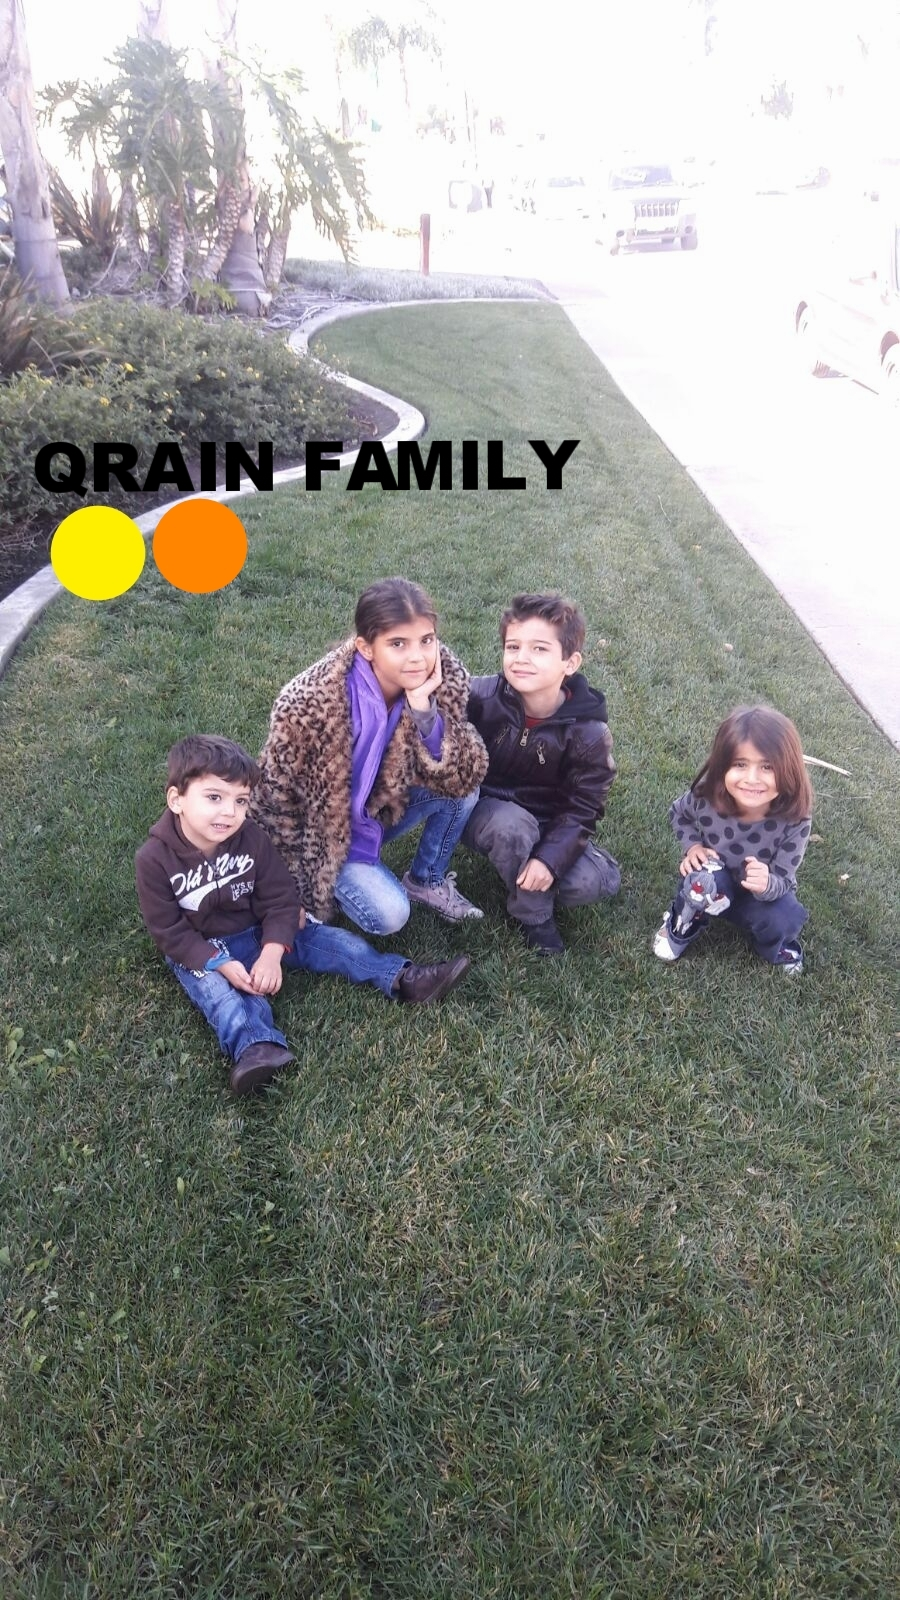 Qrain Family   Originally from Homs. Left Syria in 2012 for Jordan. Dad, mom and five children aged 11, 9, 6, 4, and 3. Husband was a plumber in Syria and is looking for employment here now.